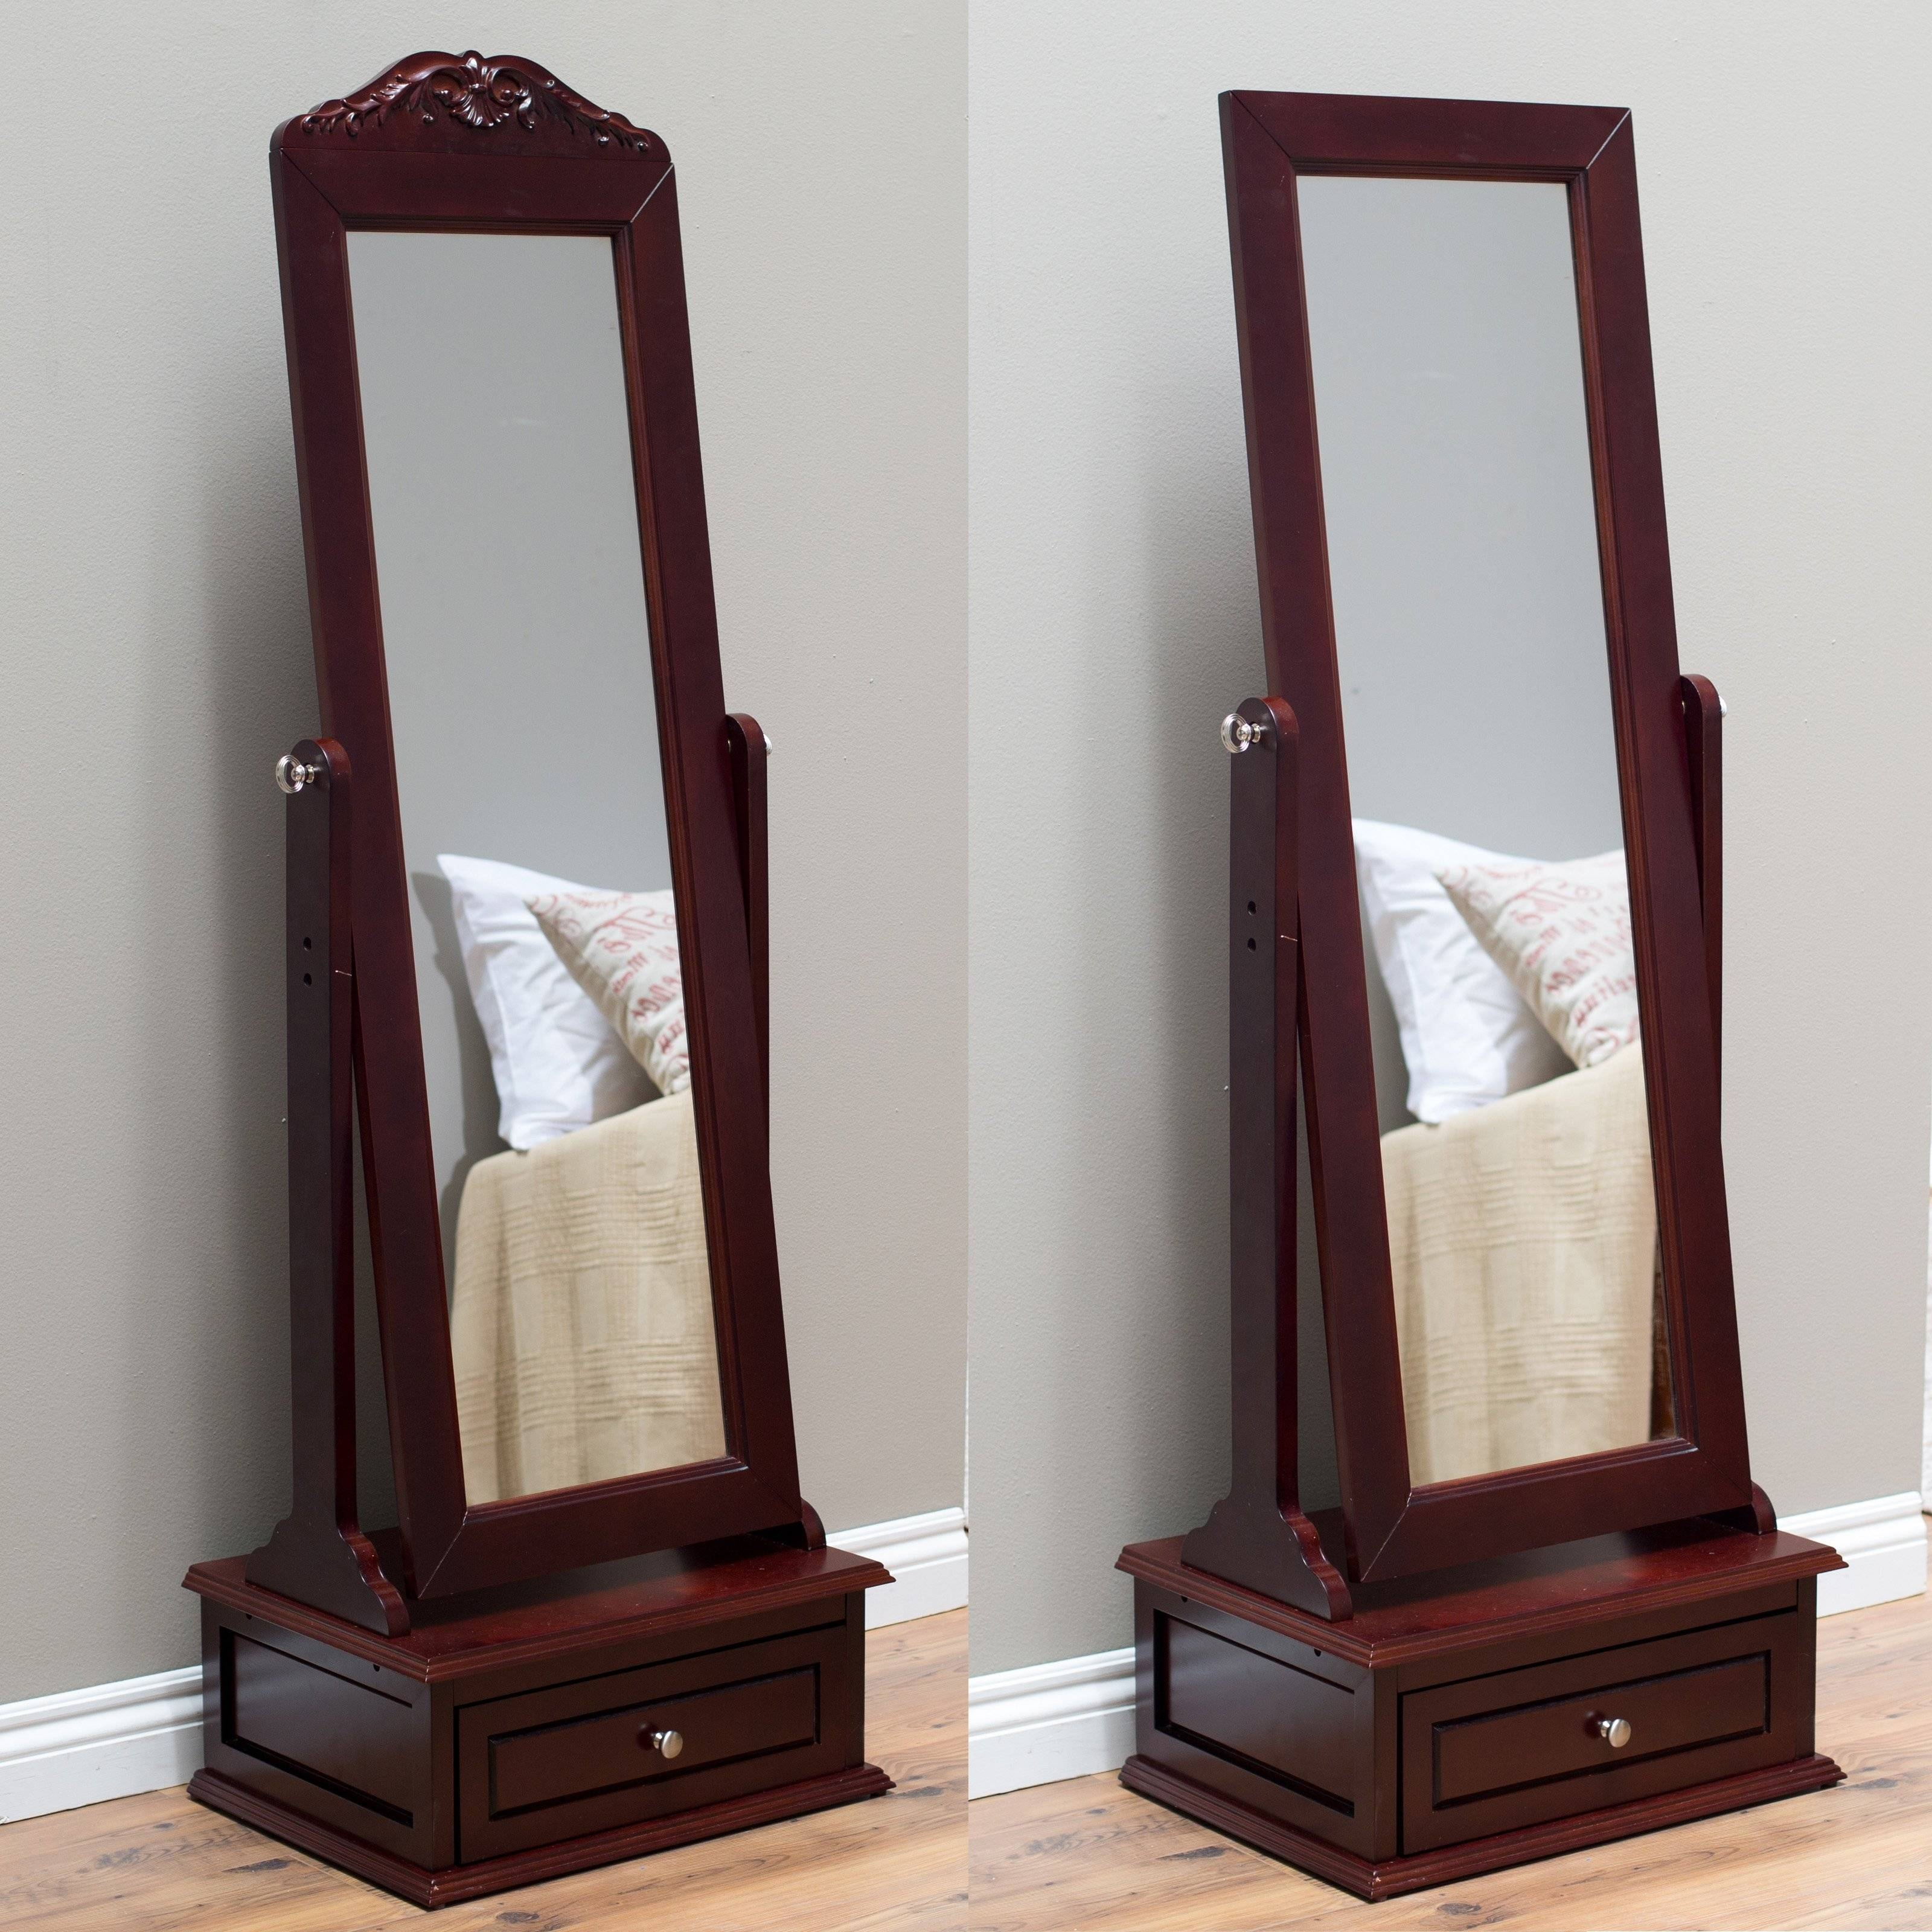 Furniture: Cheval Mirror | Standing Jewelry Mirror | Standing Mirrors In Standing Dressing Mirrors (View 3 of 15)